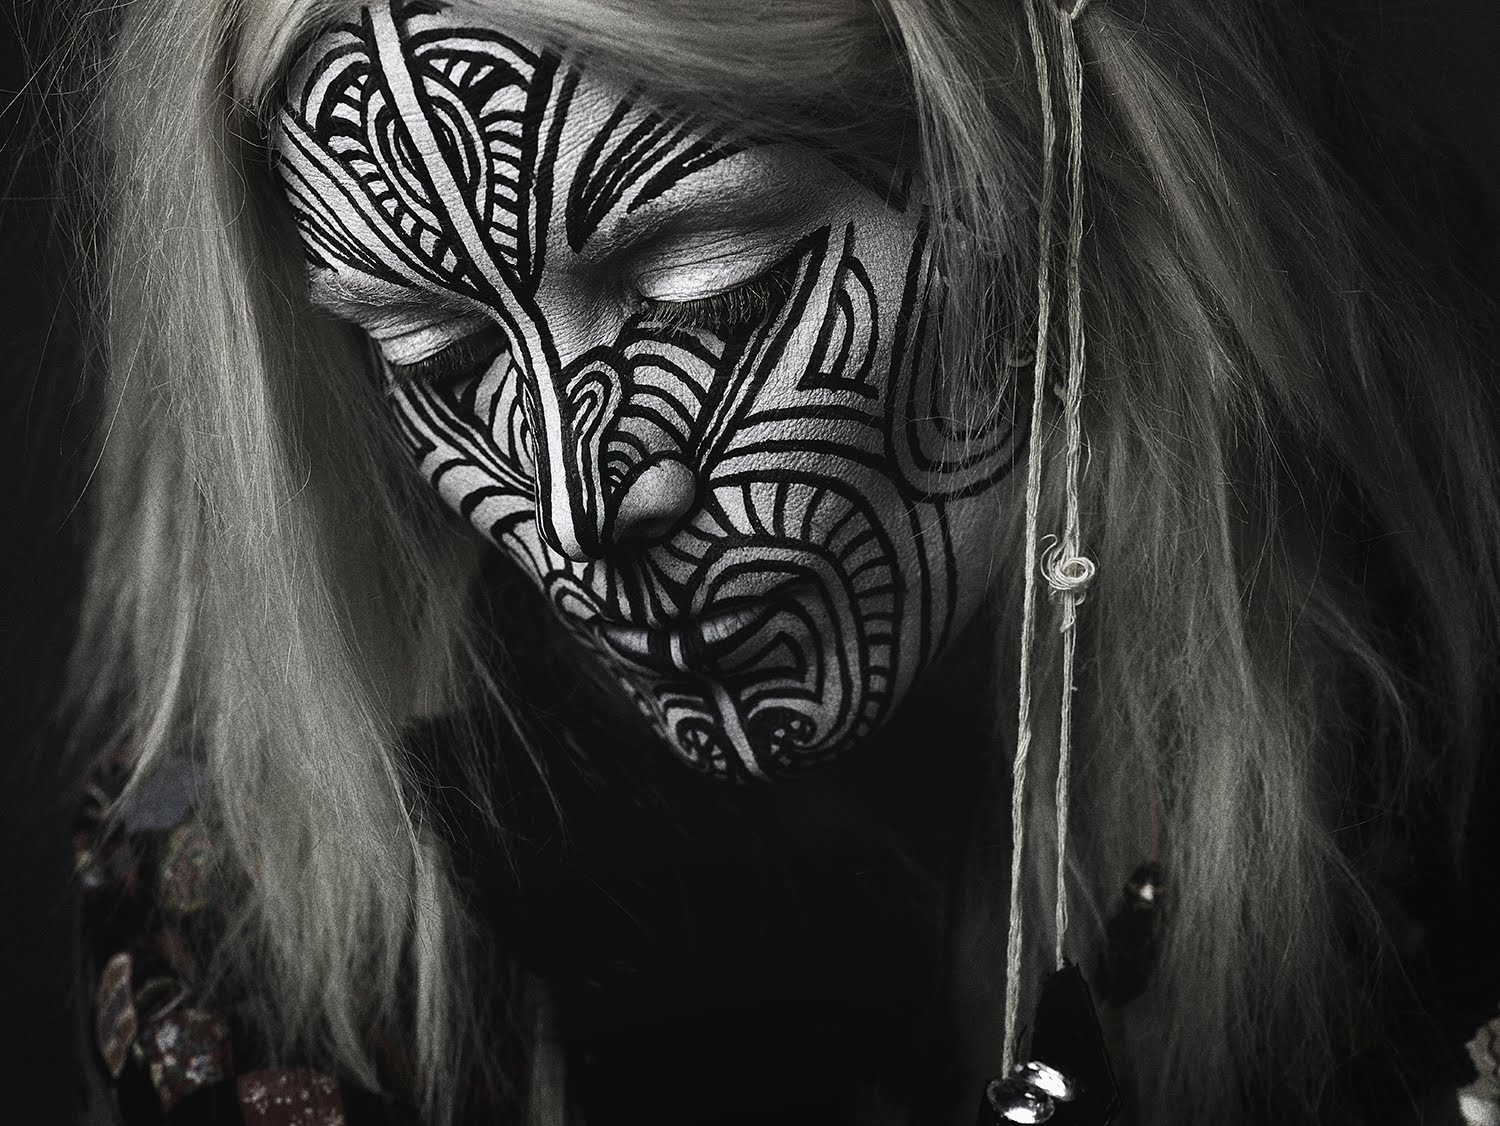 fever ray - Google Images